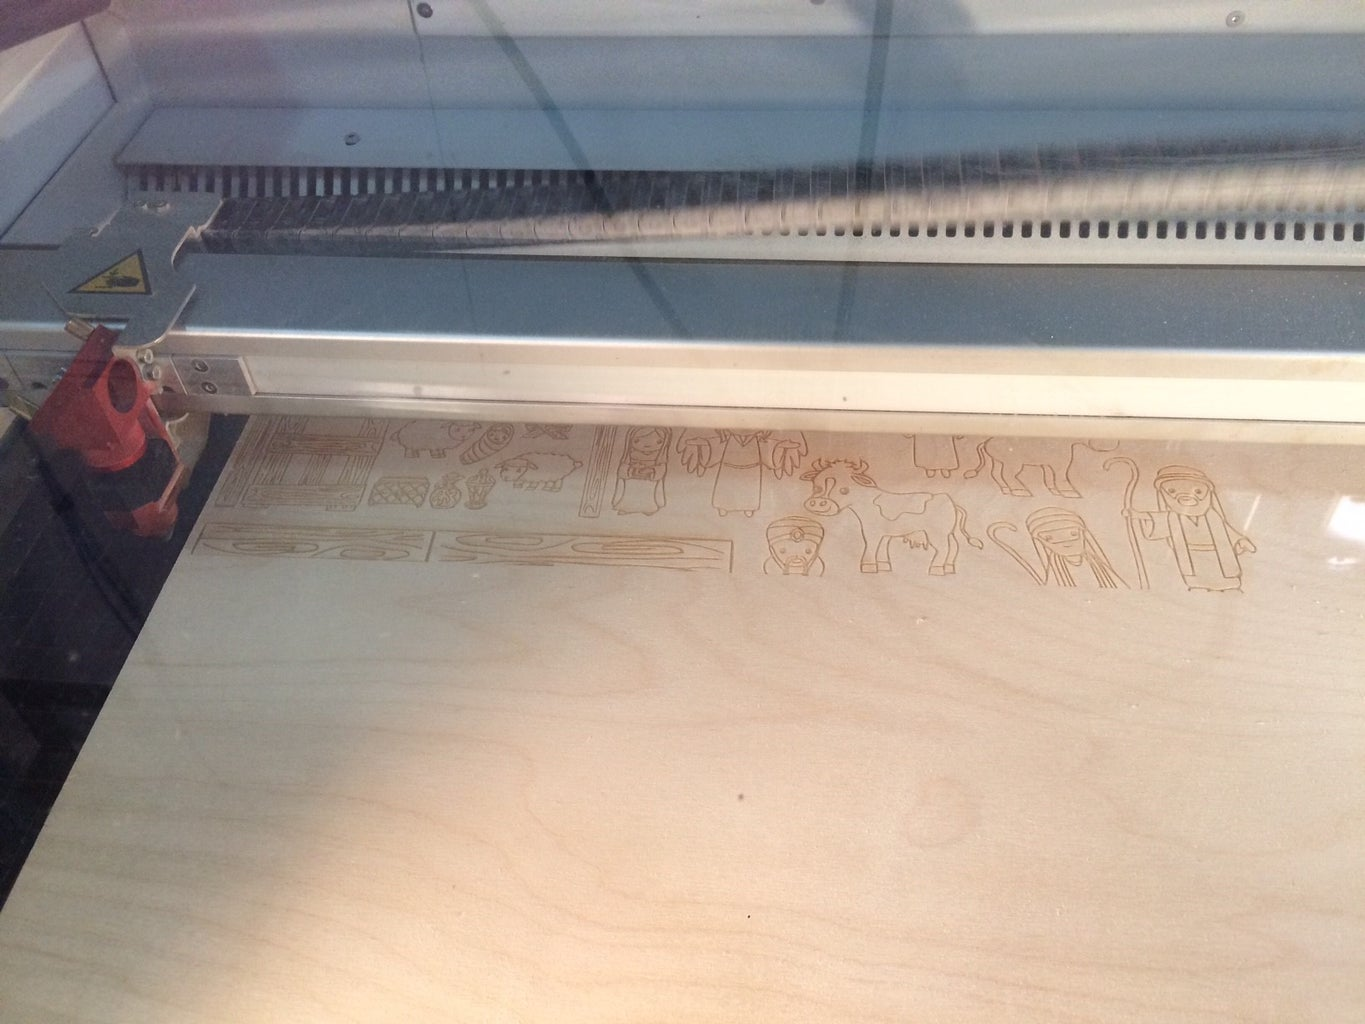 Cutting and Engraving on the Trotec Laser